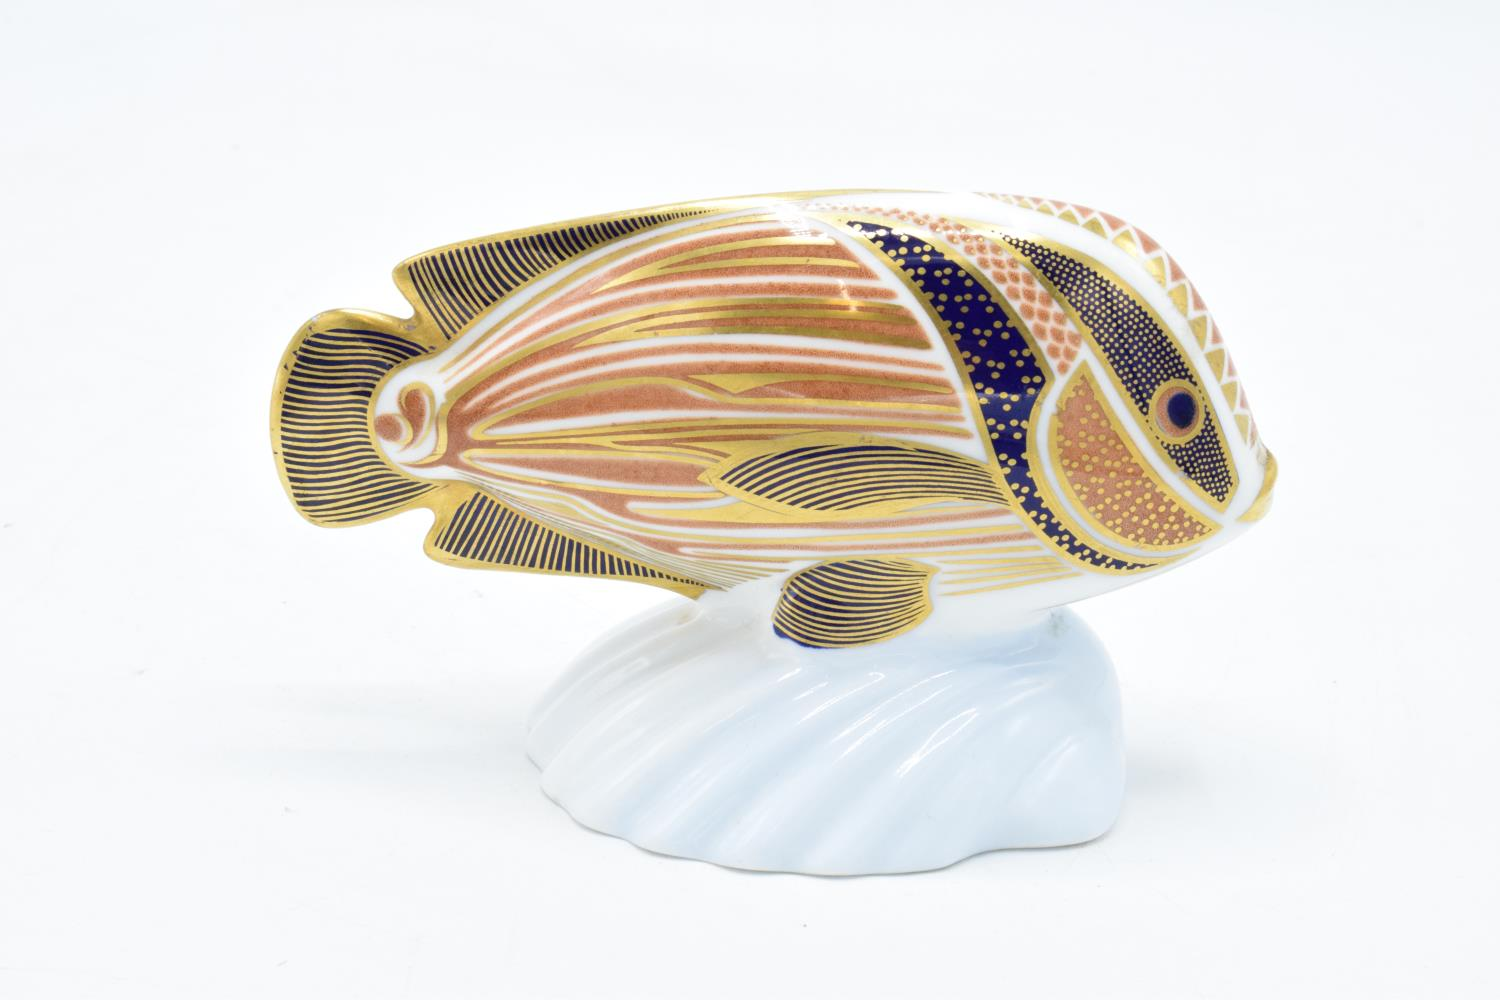 Royal Crown Derby tropical fish paperweight in the form of a Sweetlips. In good condition with no - Image 2 of 3